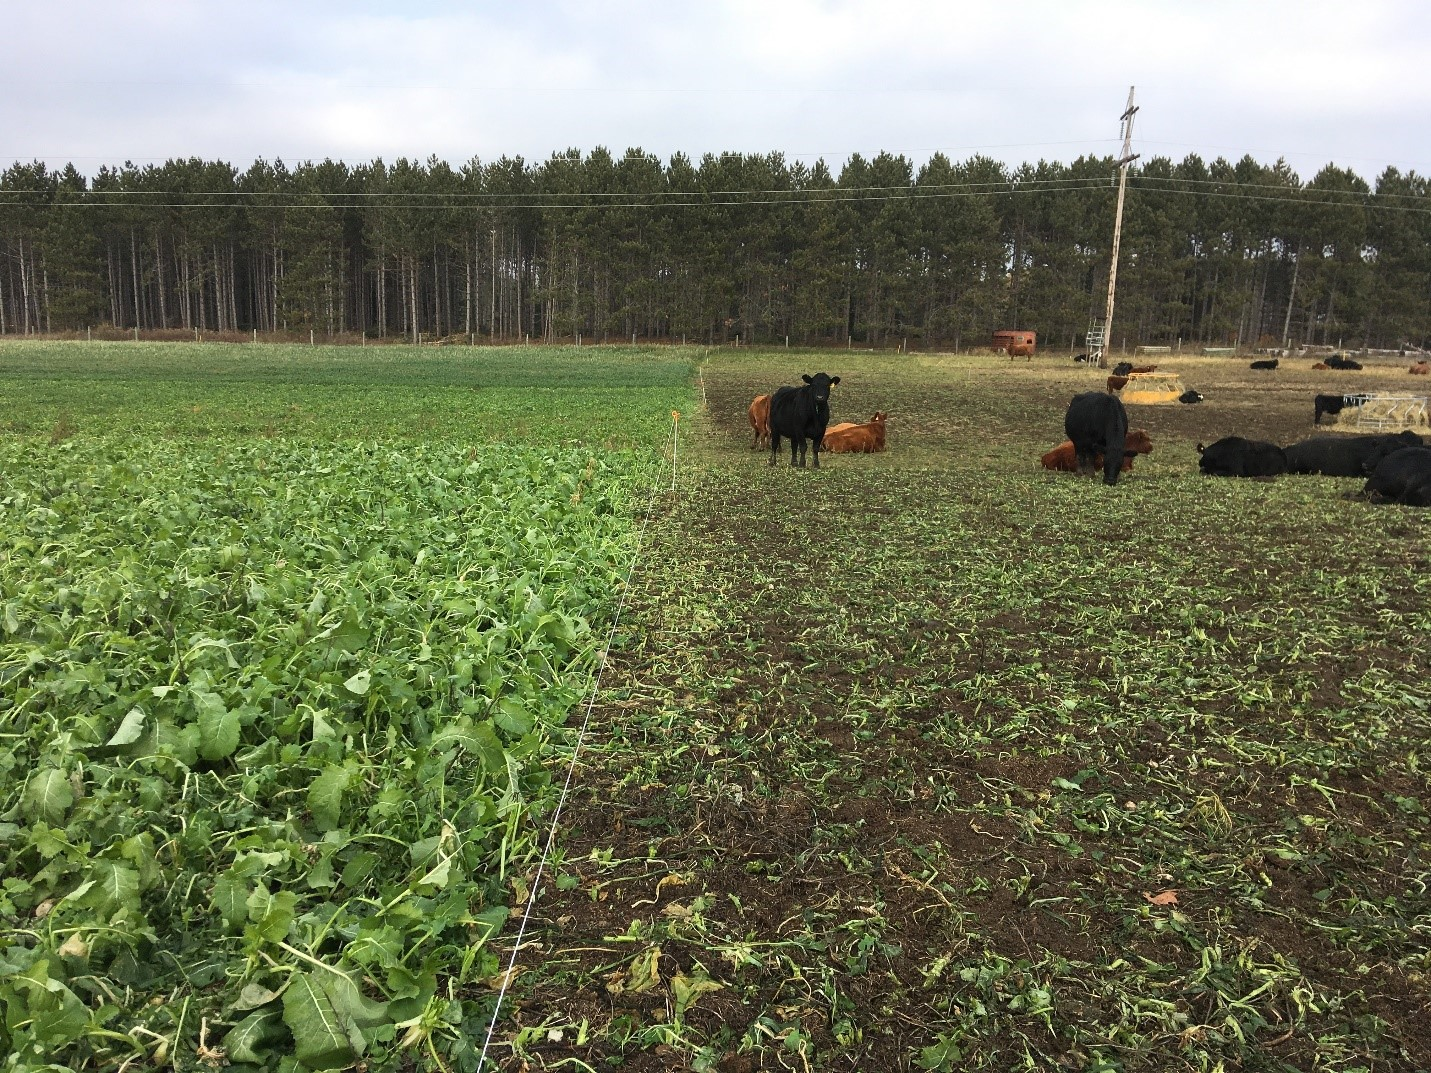 Cows grazing in cover crops